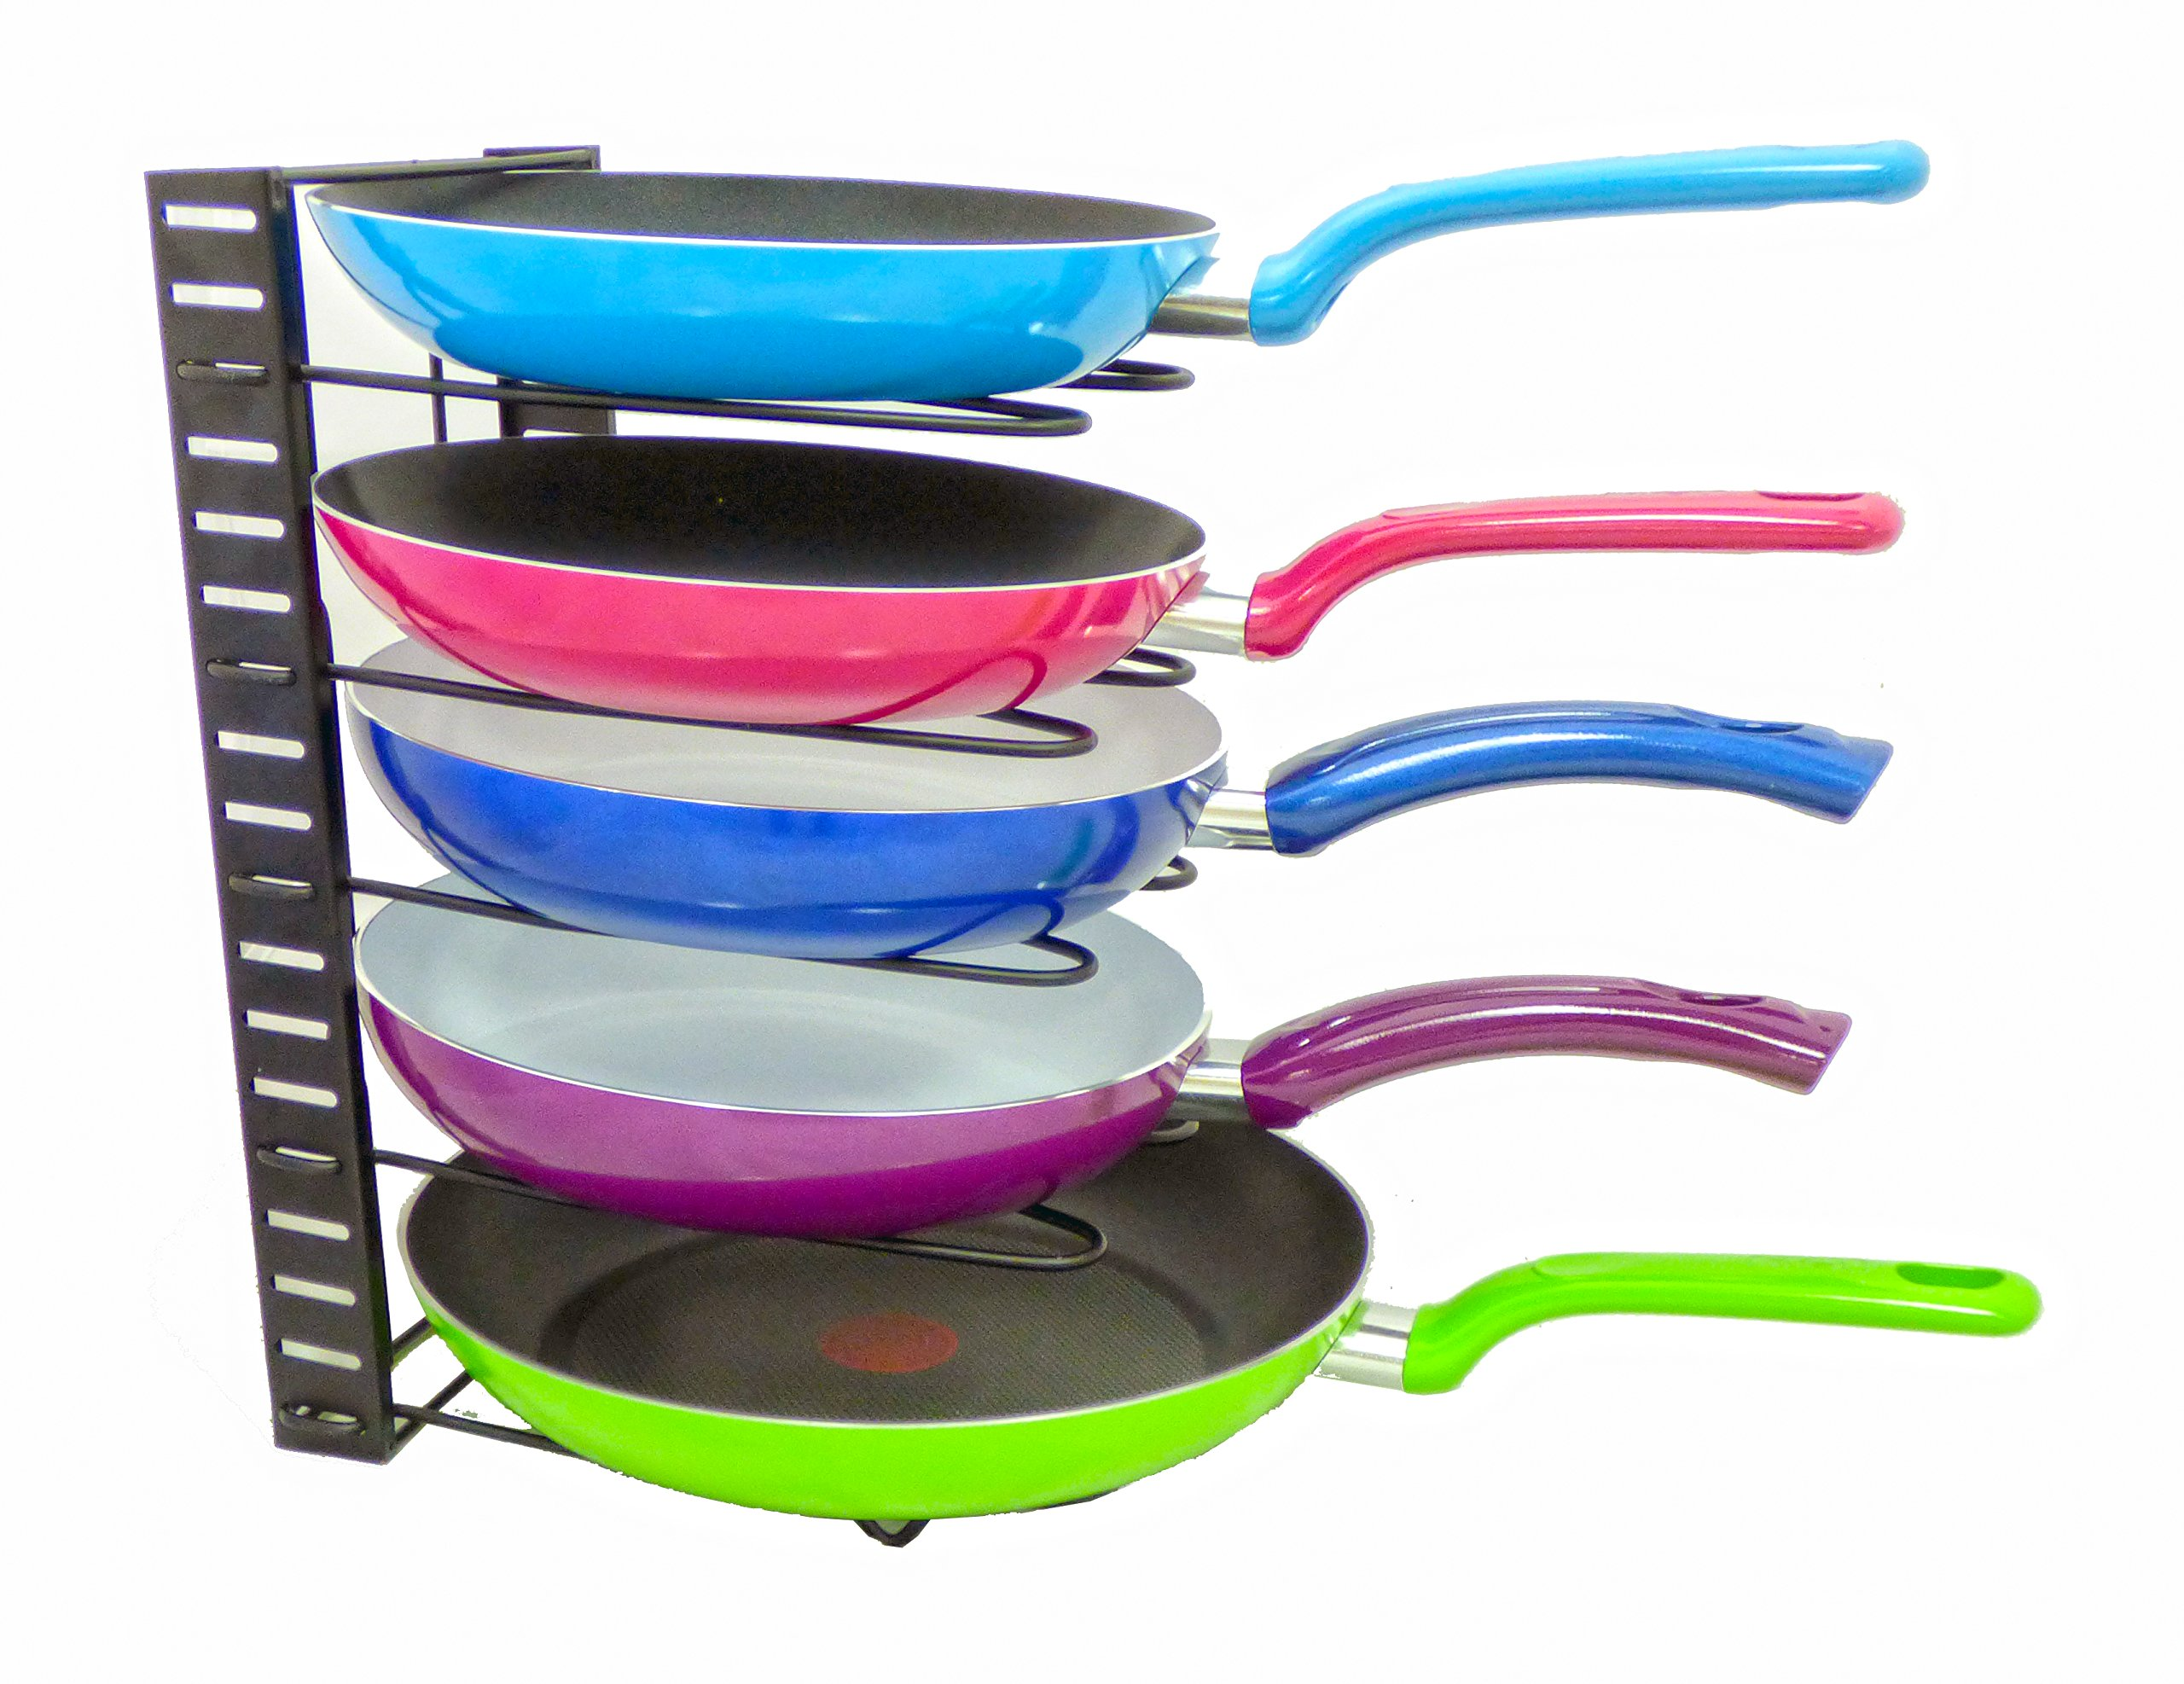 5Star Adjustable Pan Rack Pot Lid Holder Organizer - Home Cookware Storage Solution For Kitchen Countertop, Cabinet, Cupboard and Pantry - Stainless Steel Backeware Rack (Black)